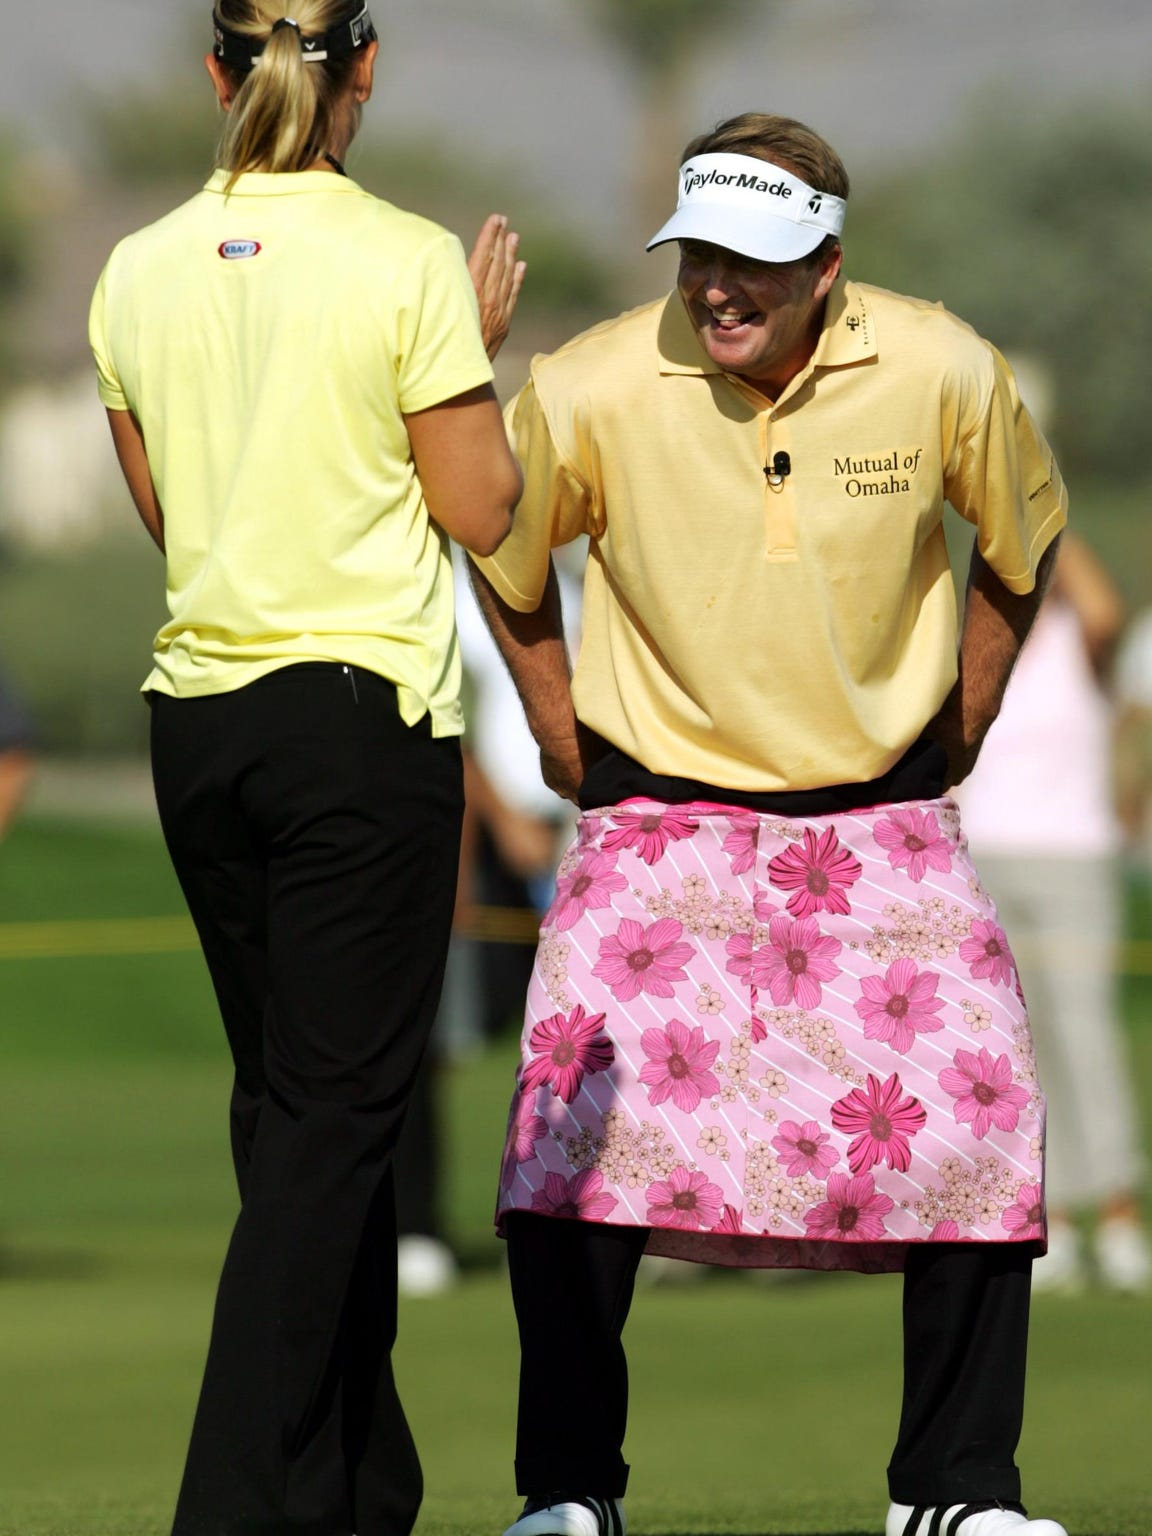 That time Fred Funk wore a pink skirt at the Skins